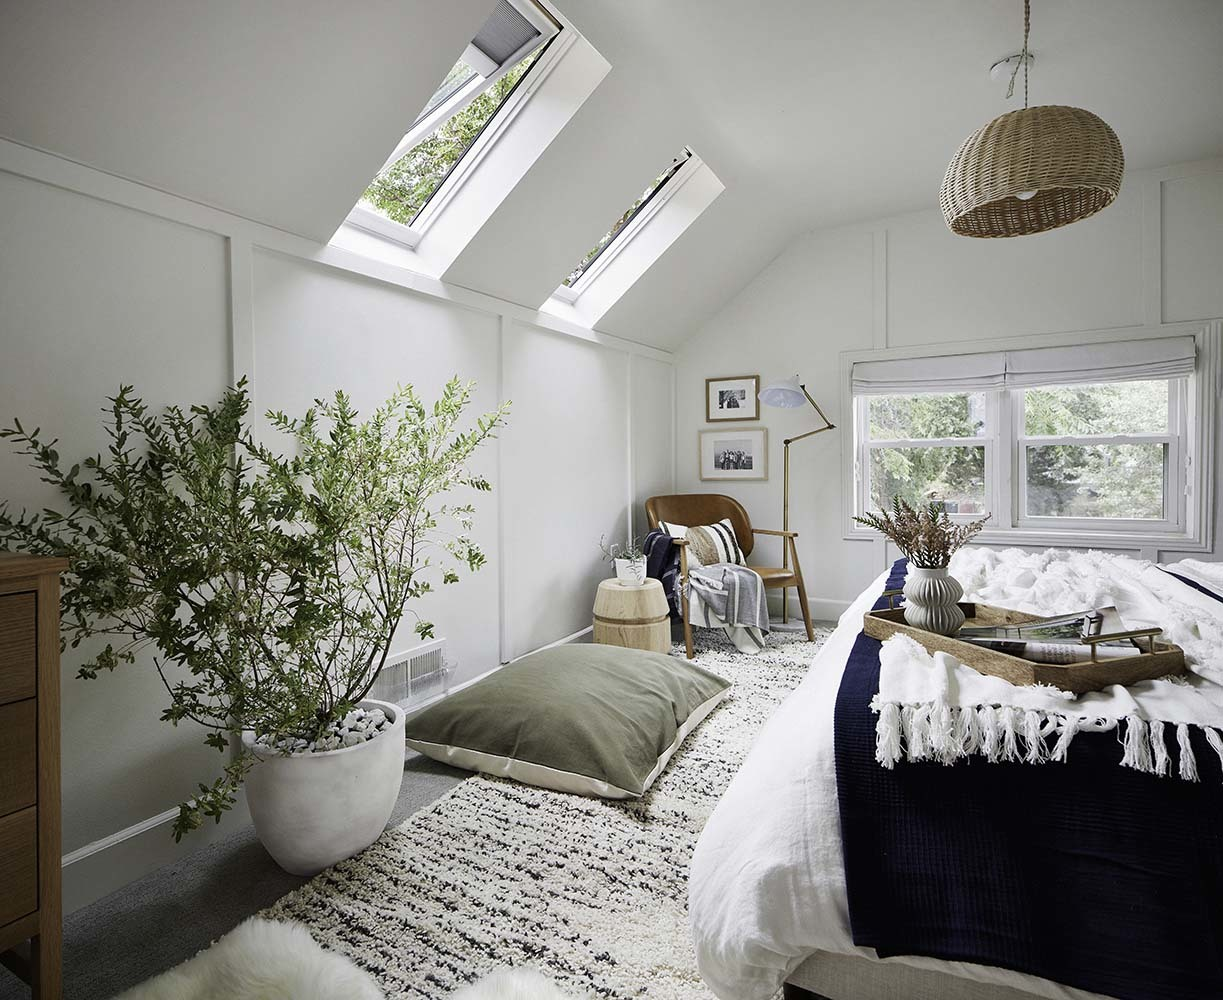 Bedroom Skylight With Blinds Lighting Control And Privacy